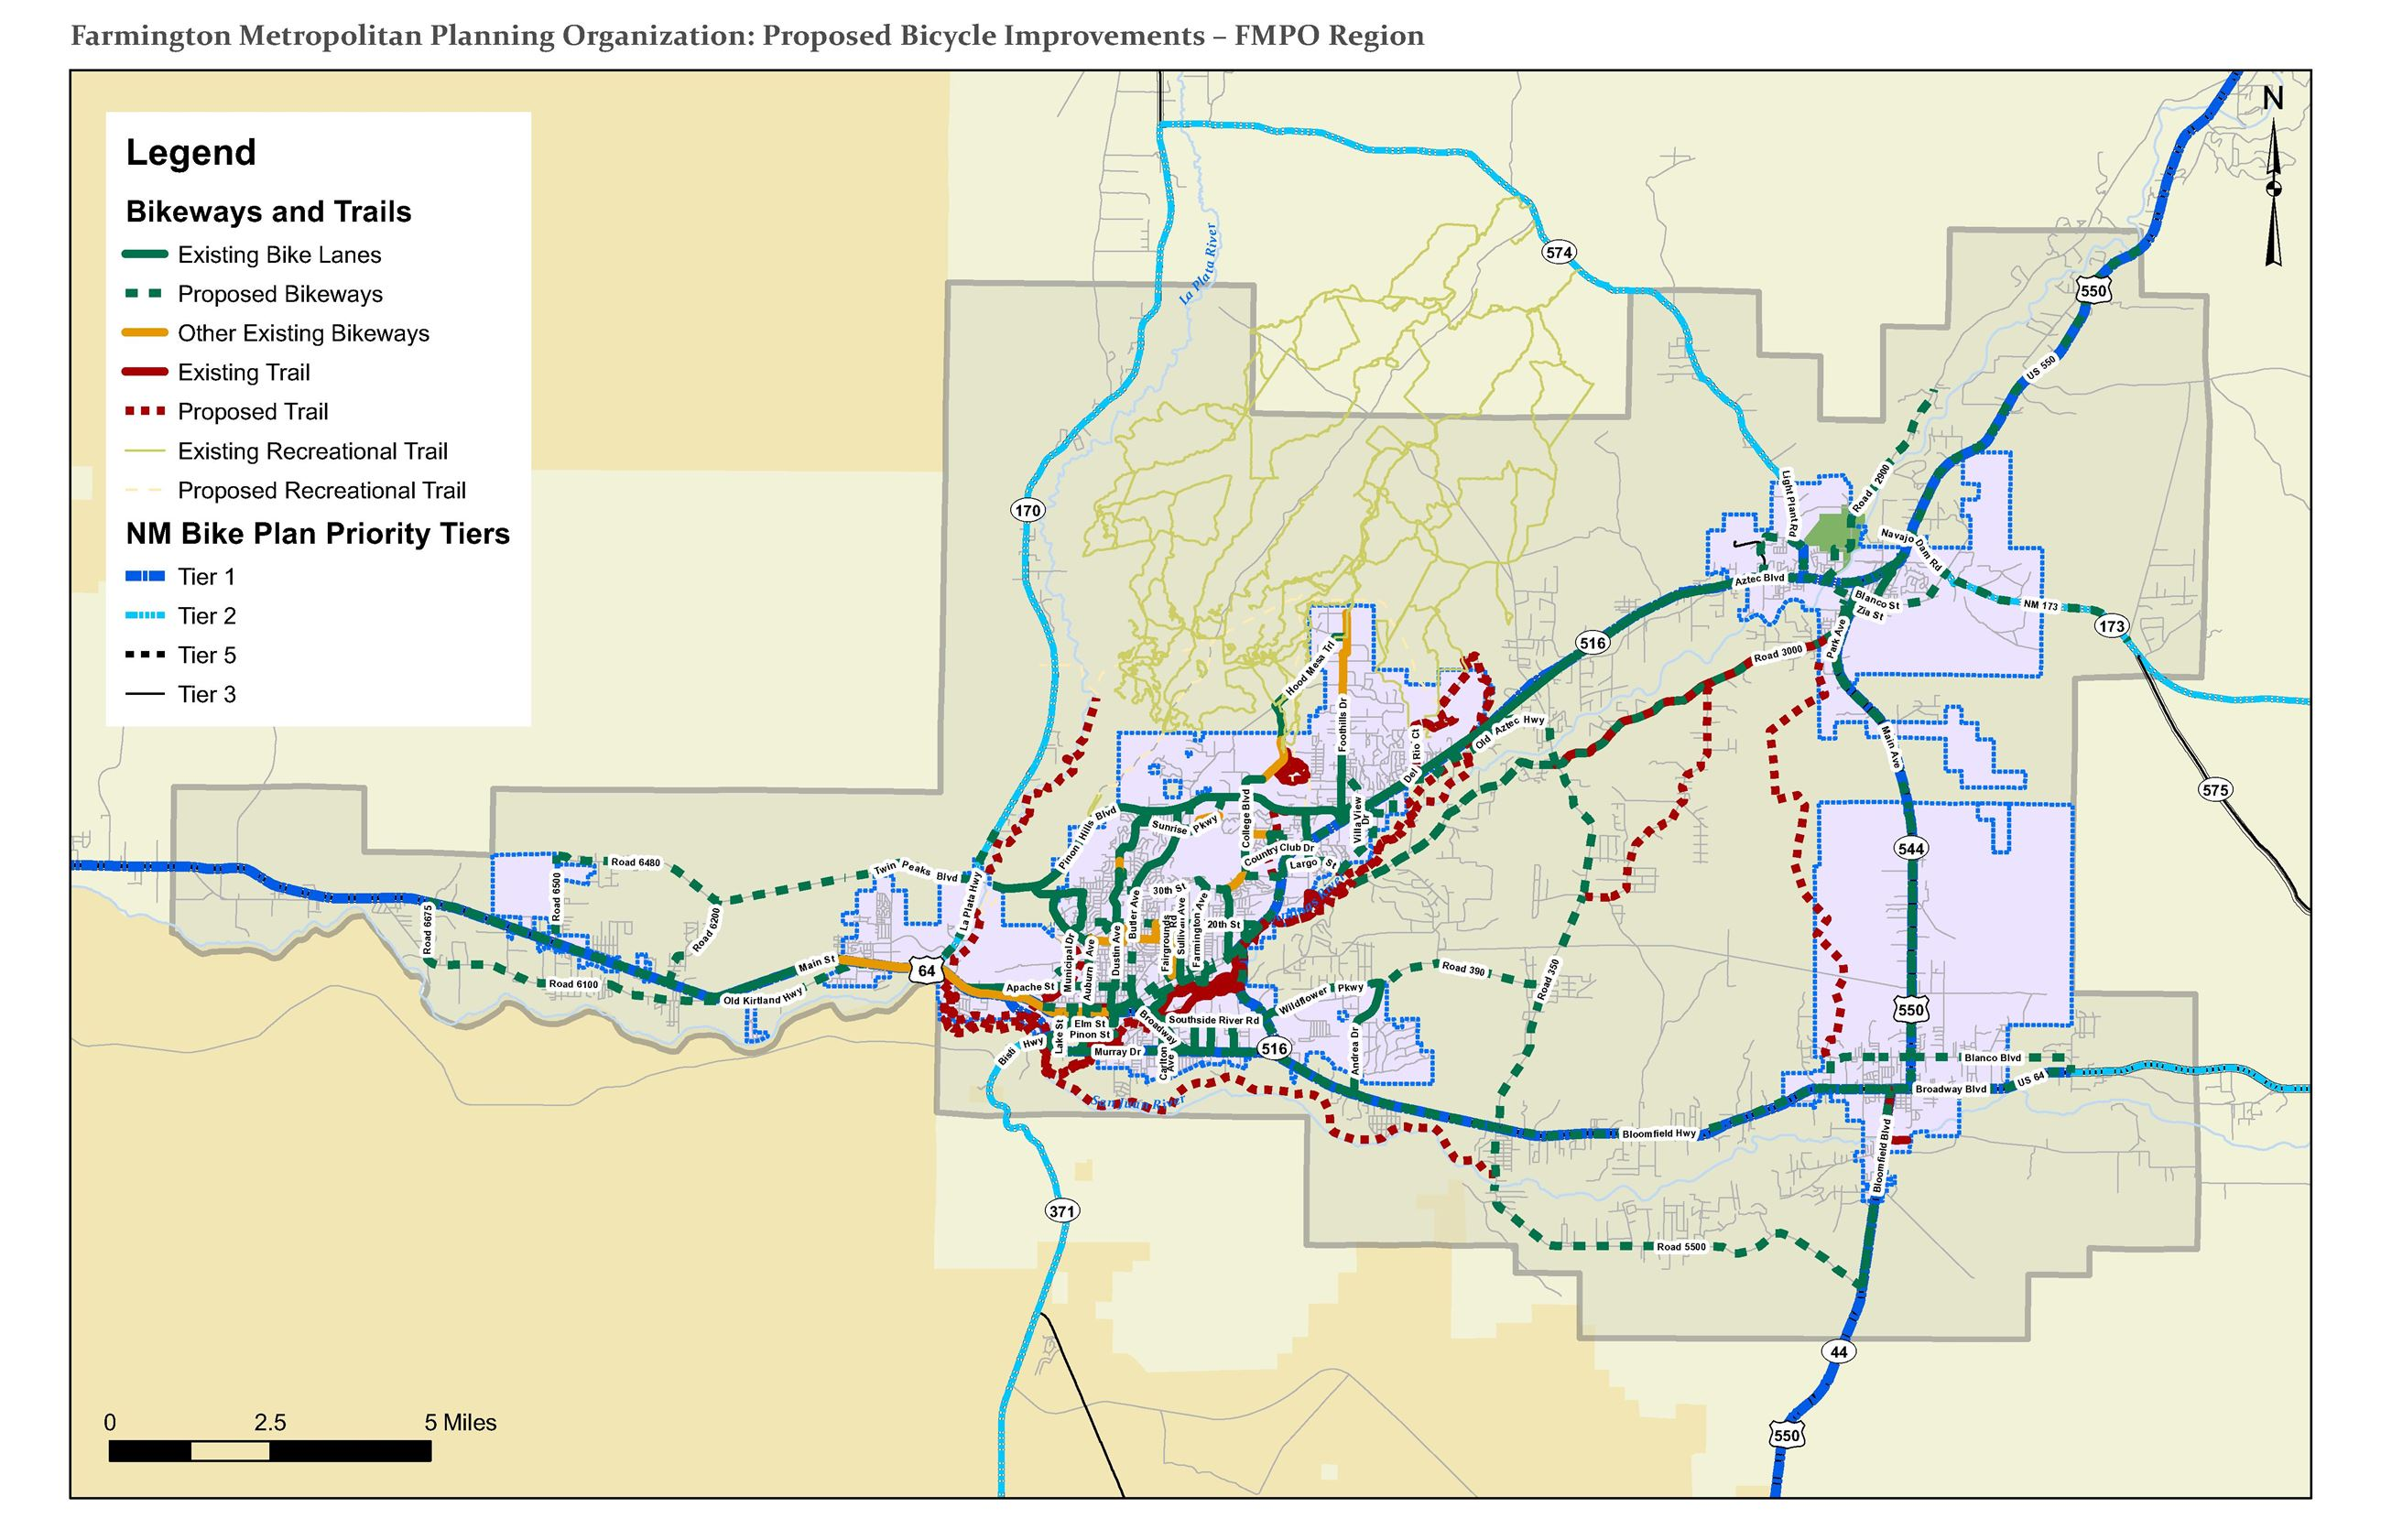 Map - Proposed Bicycle Improvemnts - FMPO Region Opens in new window